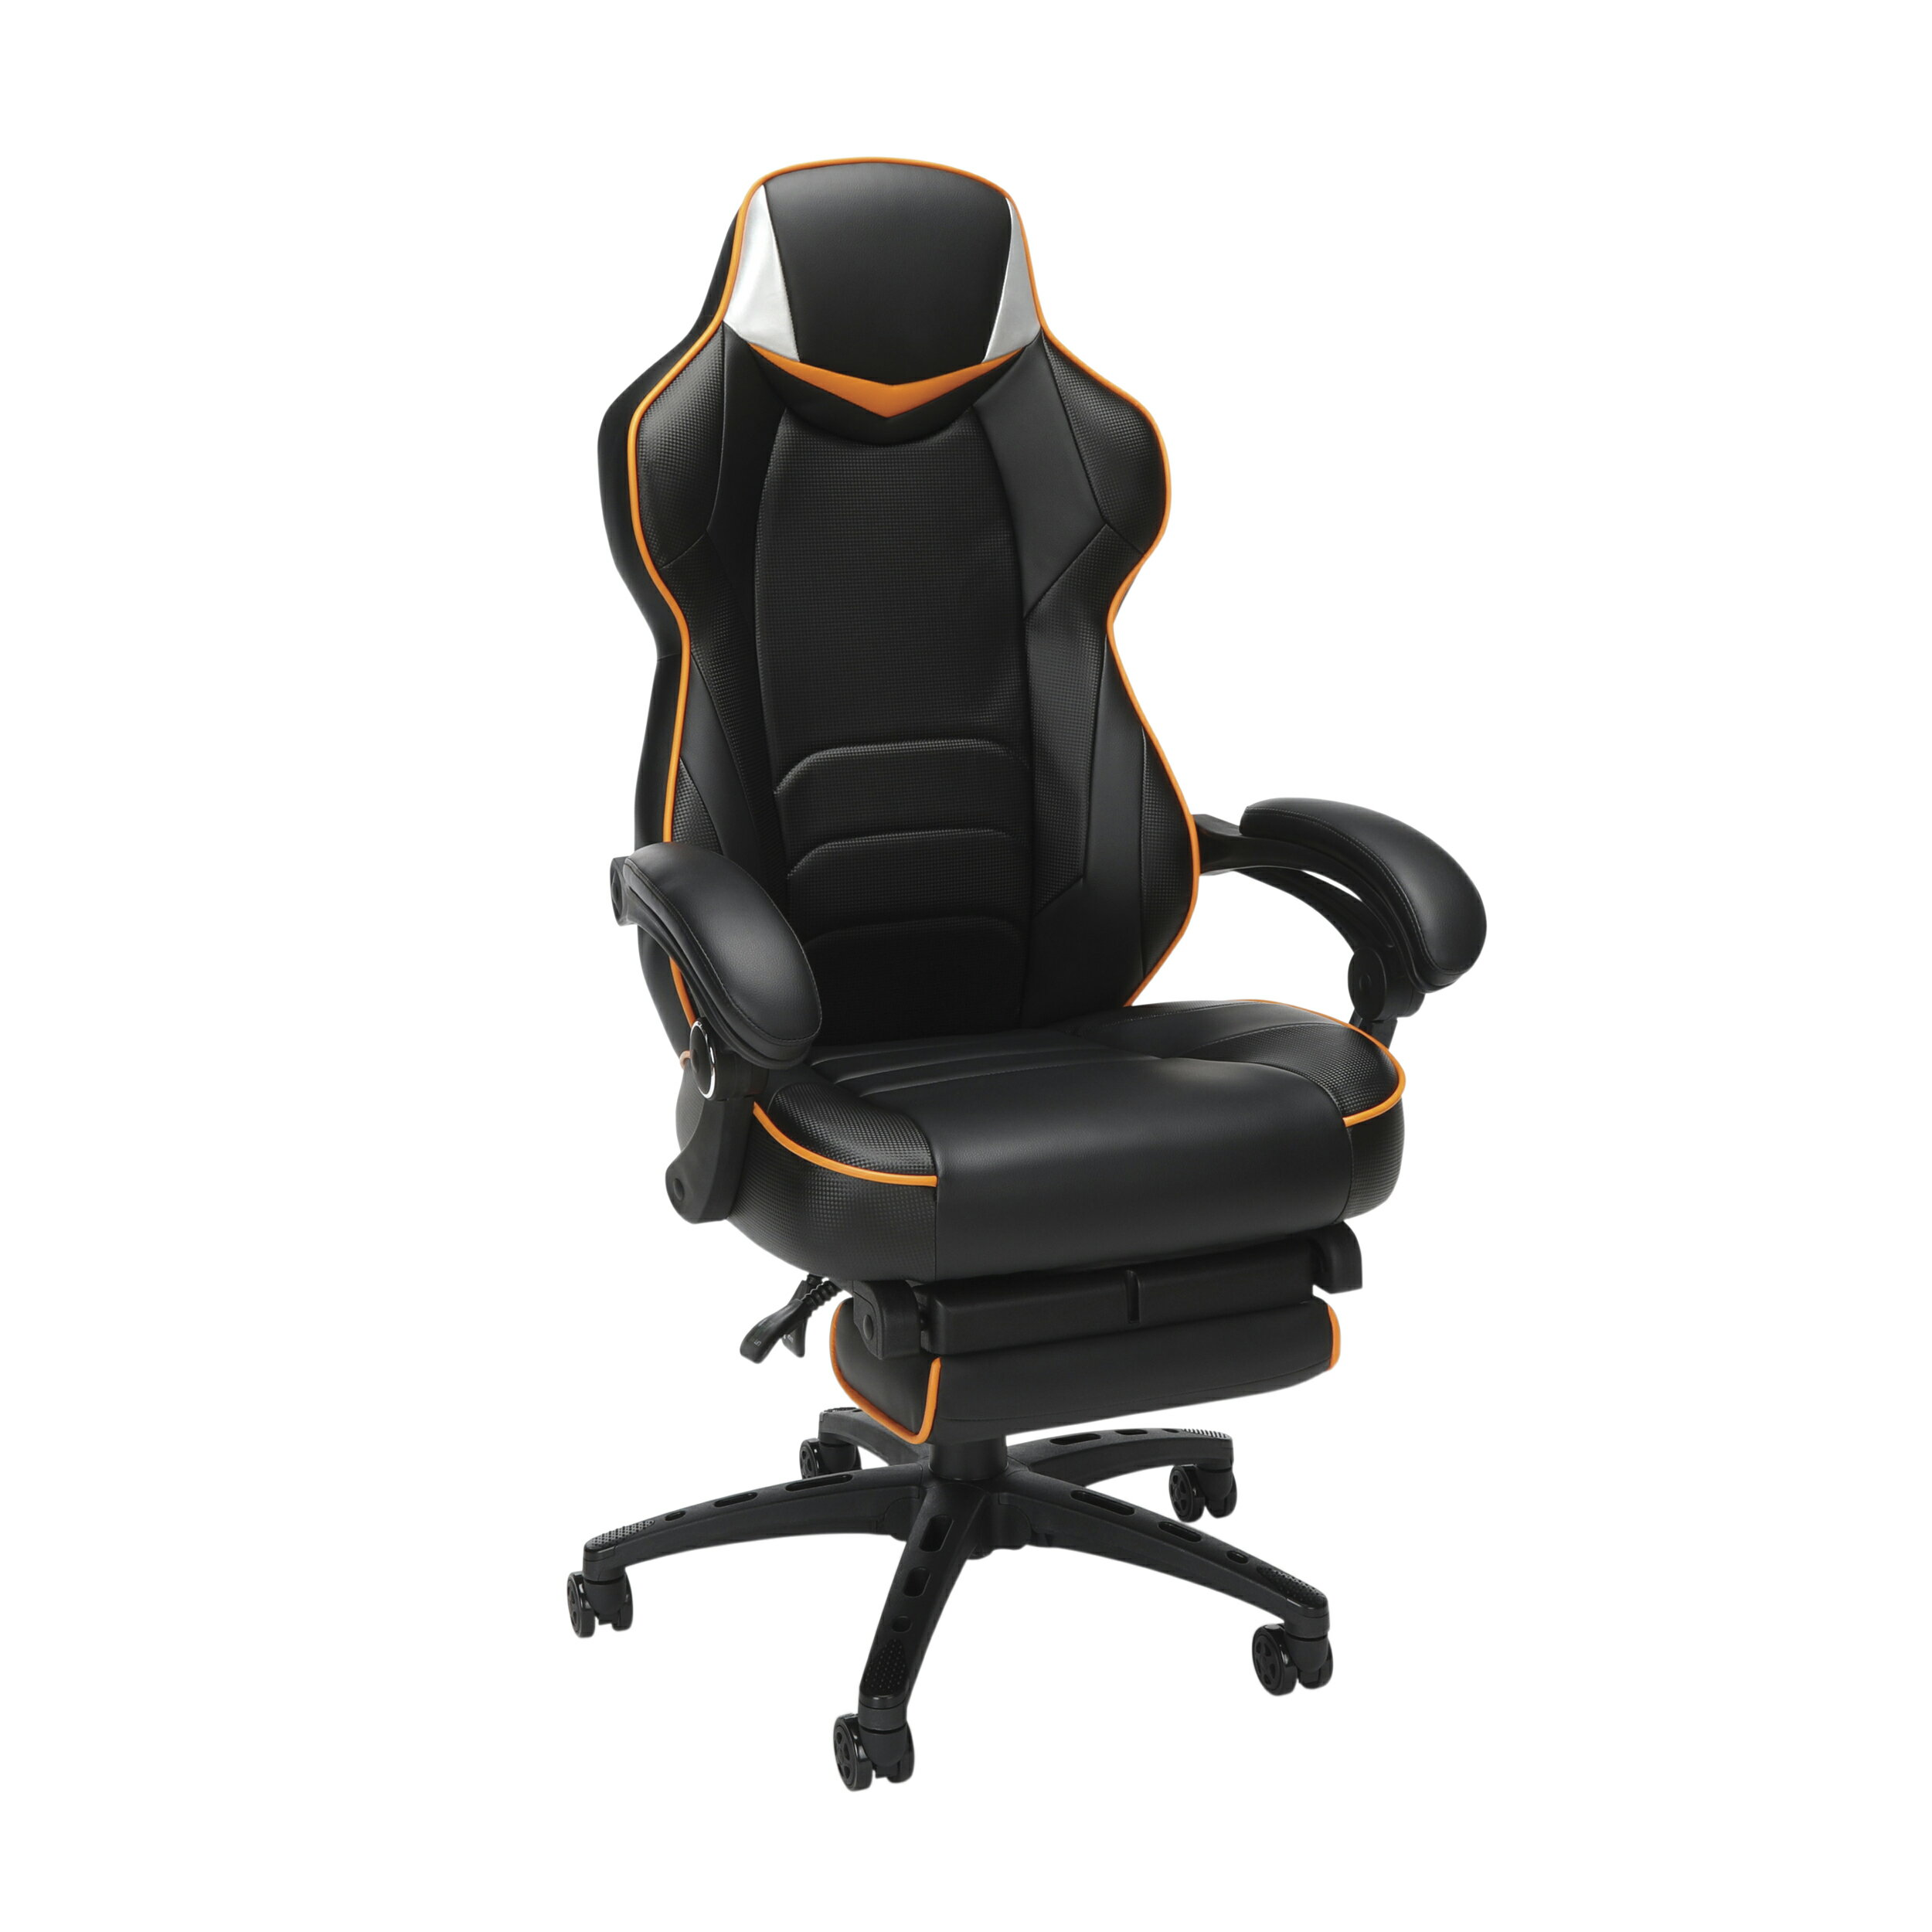 Respawn OFM Reclining Ergonomic Chair with Footrest (OMEGA-02)